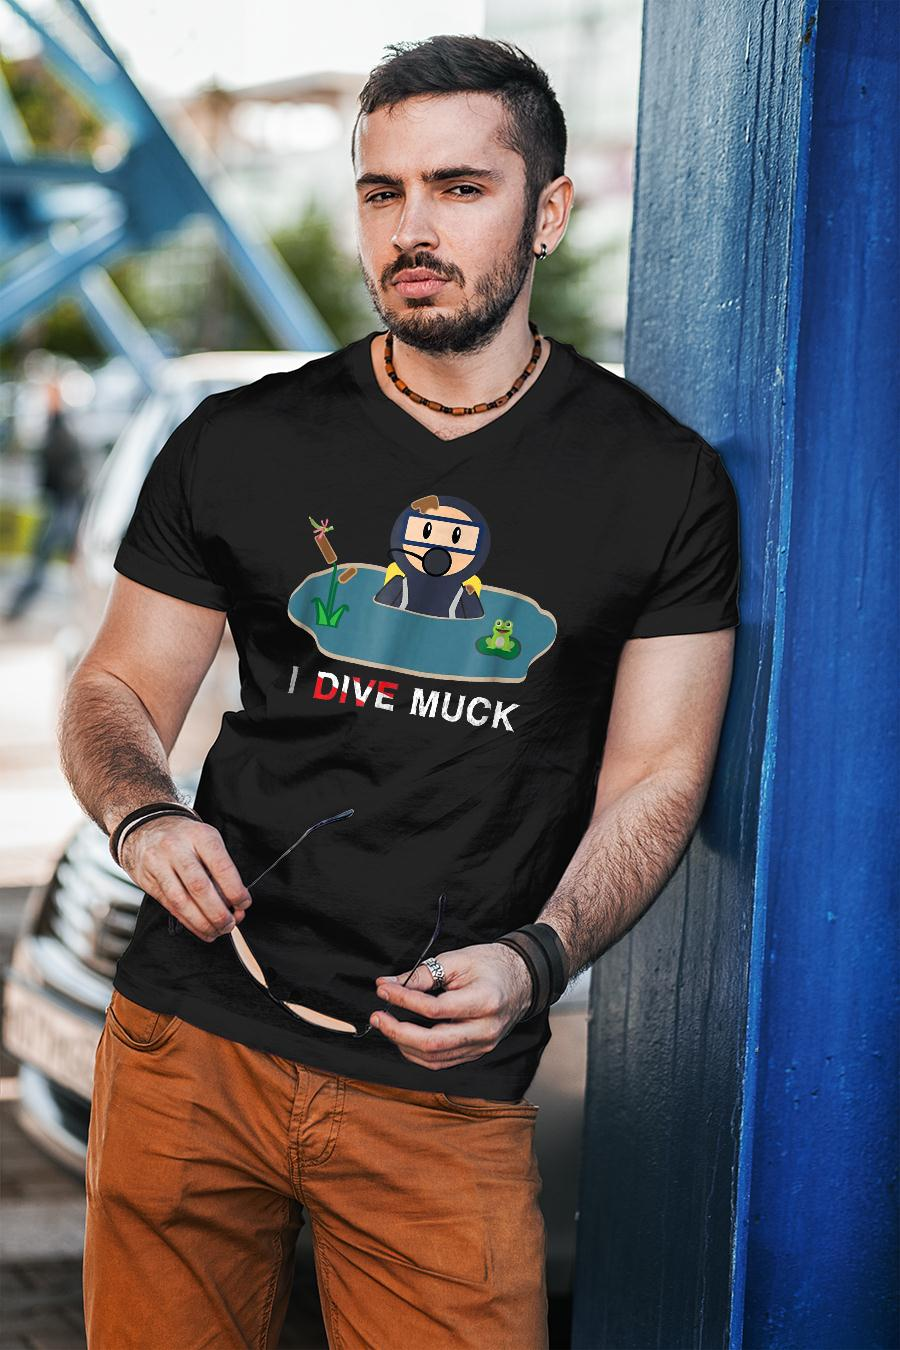 I Dive Muck Cartoon Scuba Diving shirt unisex